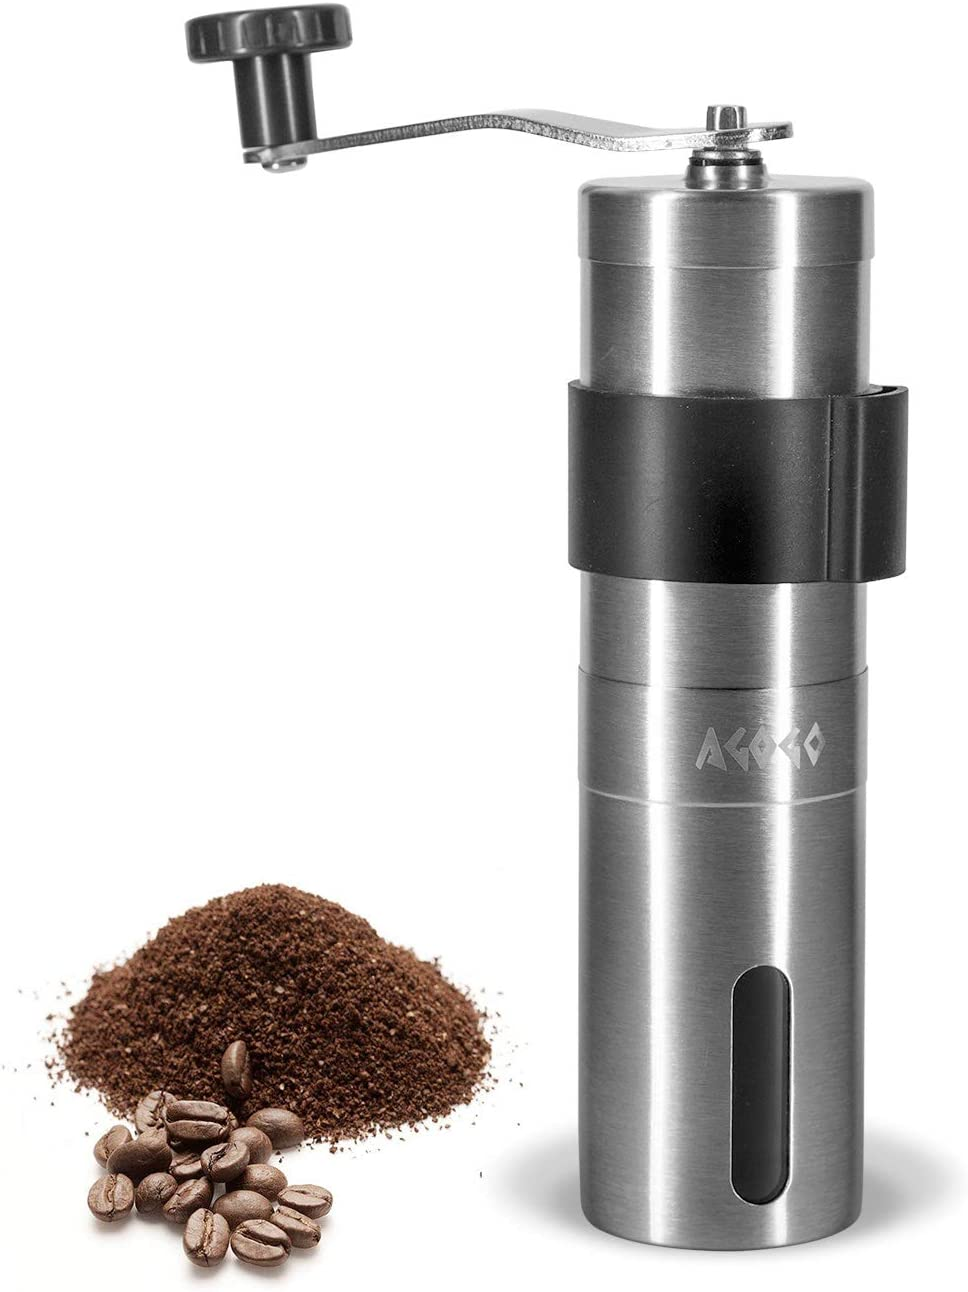 AGOGO Manual Super intense SALE Coffee Grinder Finally popular brand with Adjustable Stainles Setting 304